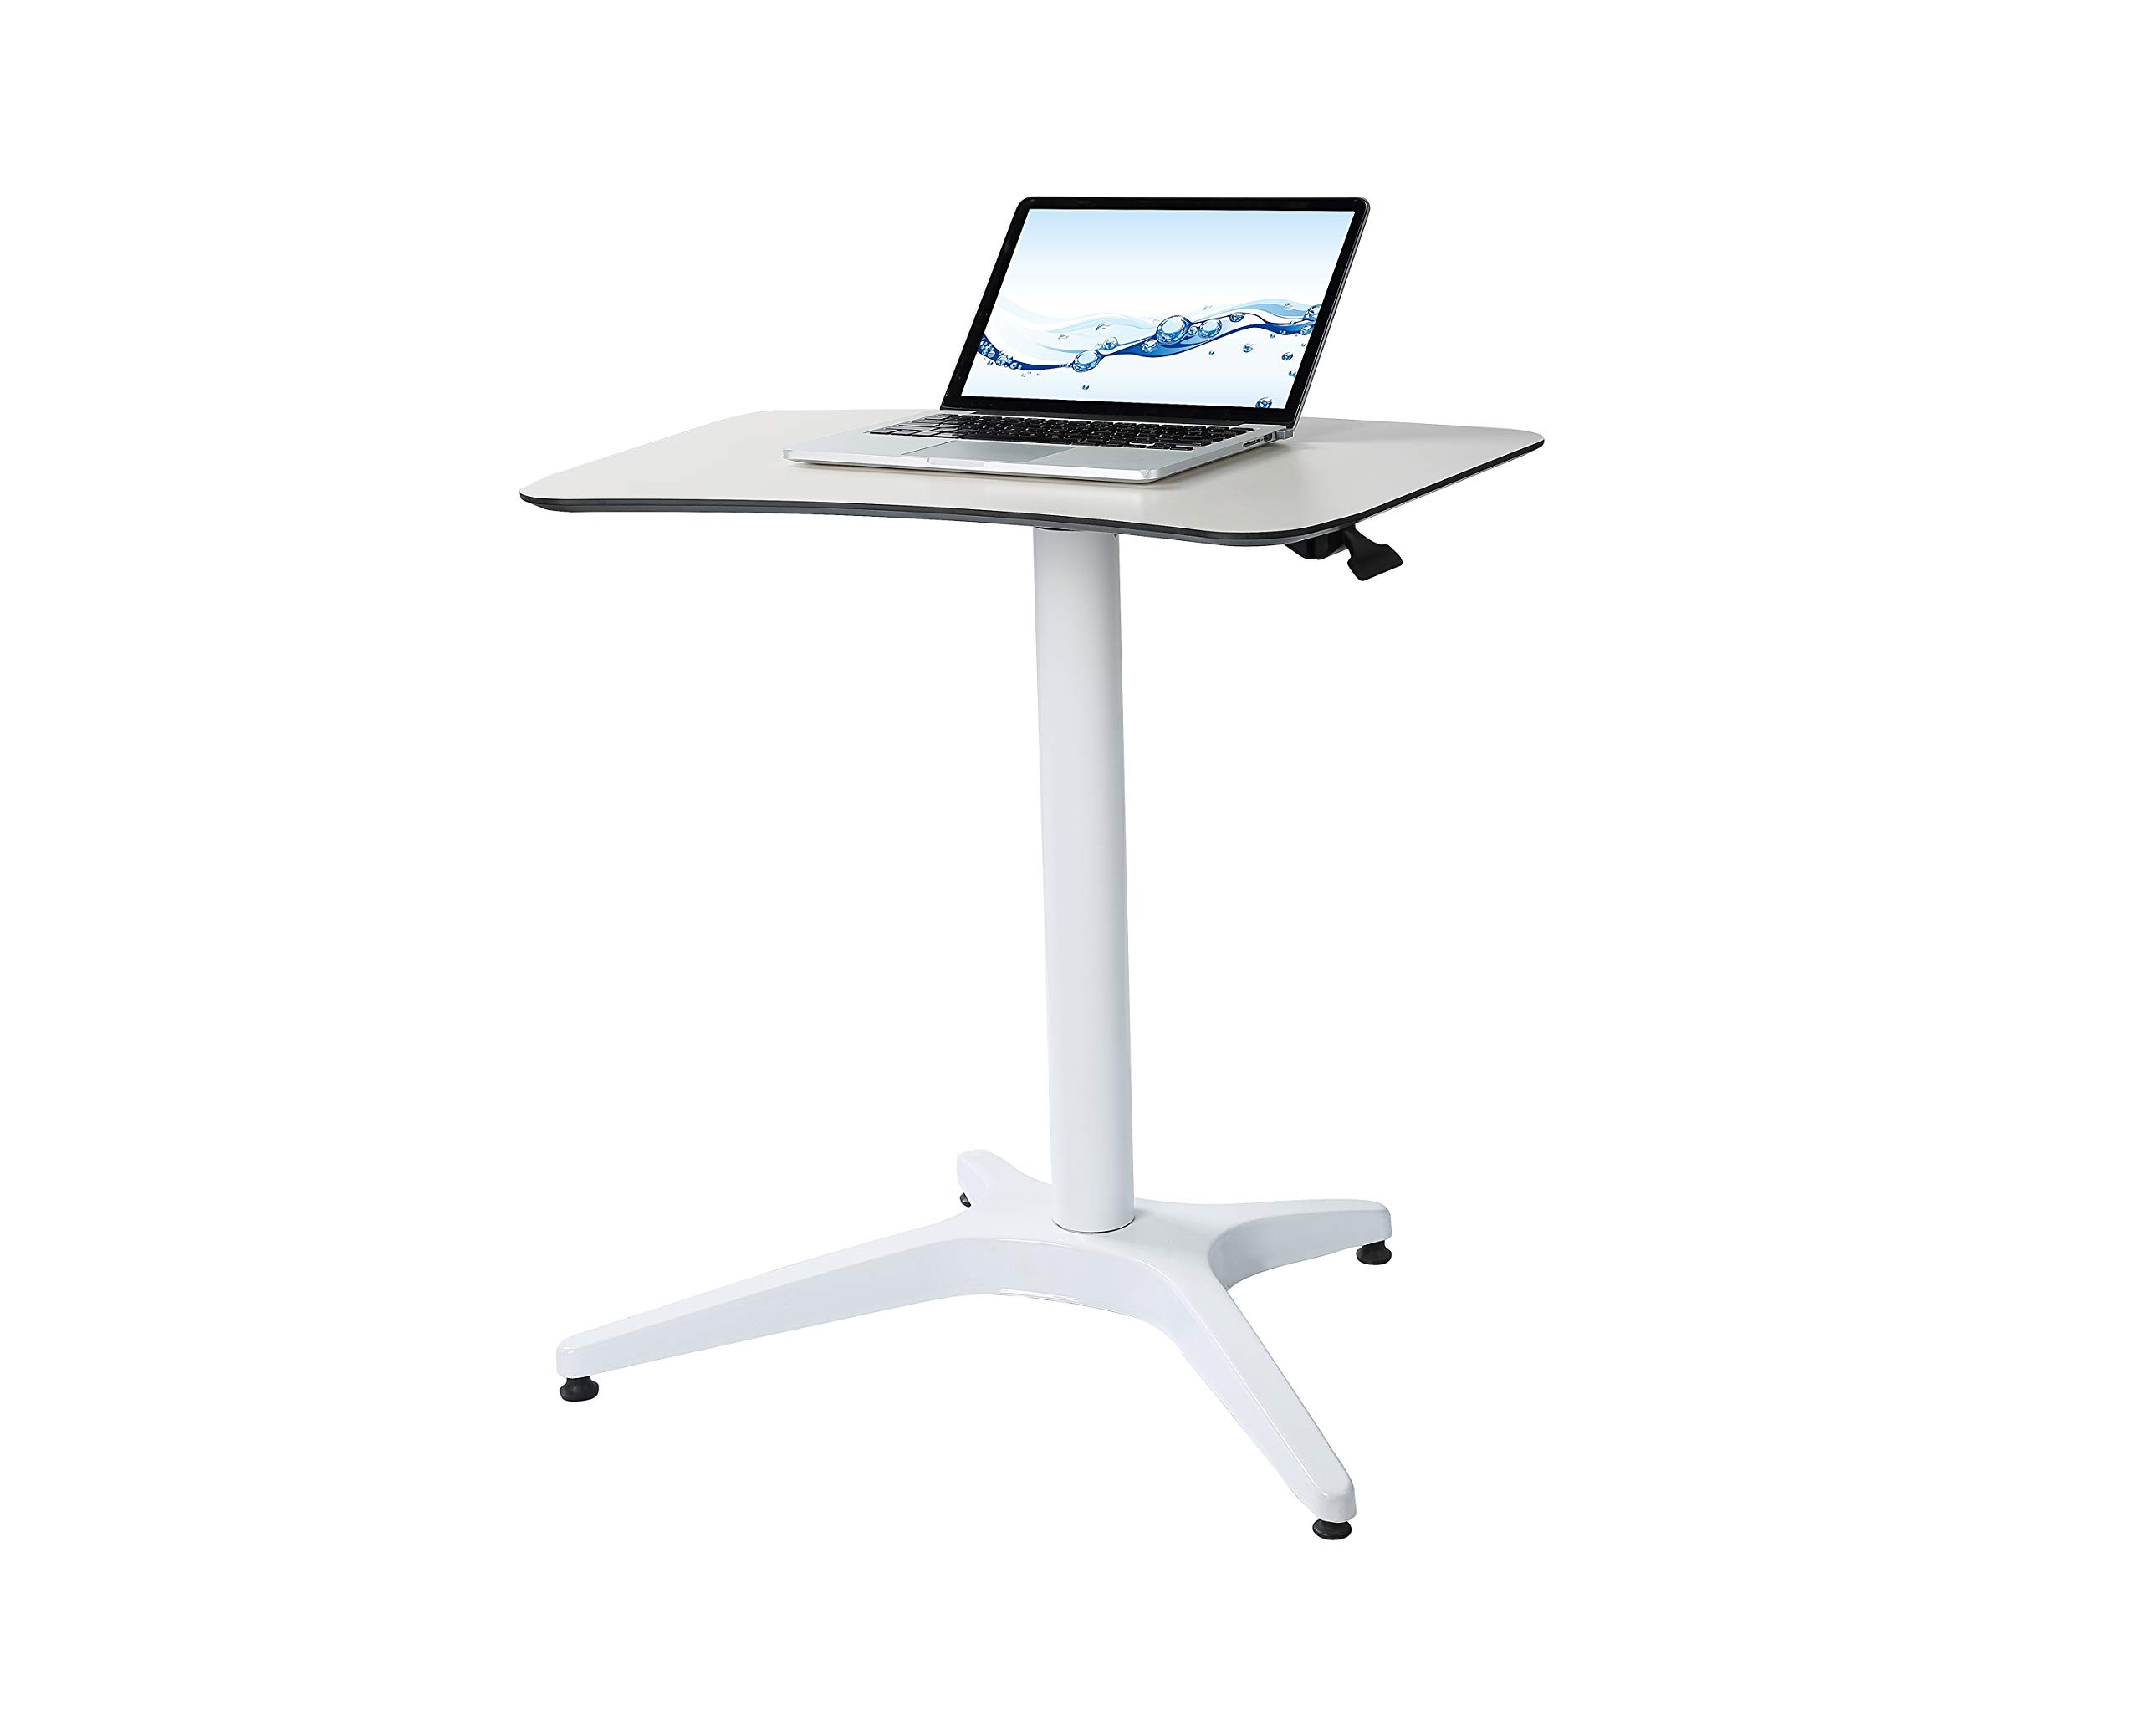 Pneumatic Adjustable Height Laptop Desk, Sit and Stand Mobile, Ergonomic Design, Excellent Lectern for Classrooms, Offices, and Home! Cartmay(White) by Cartmay